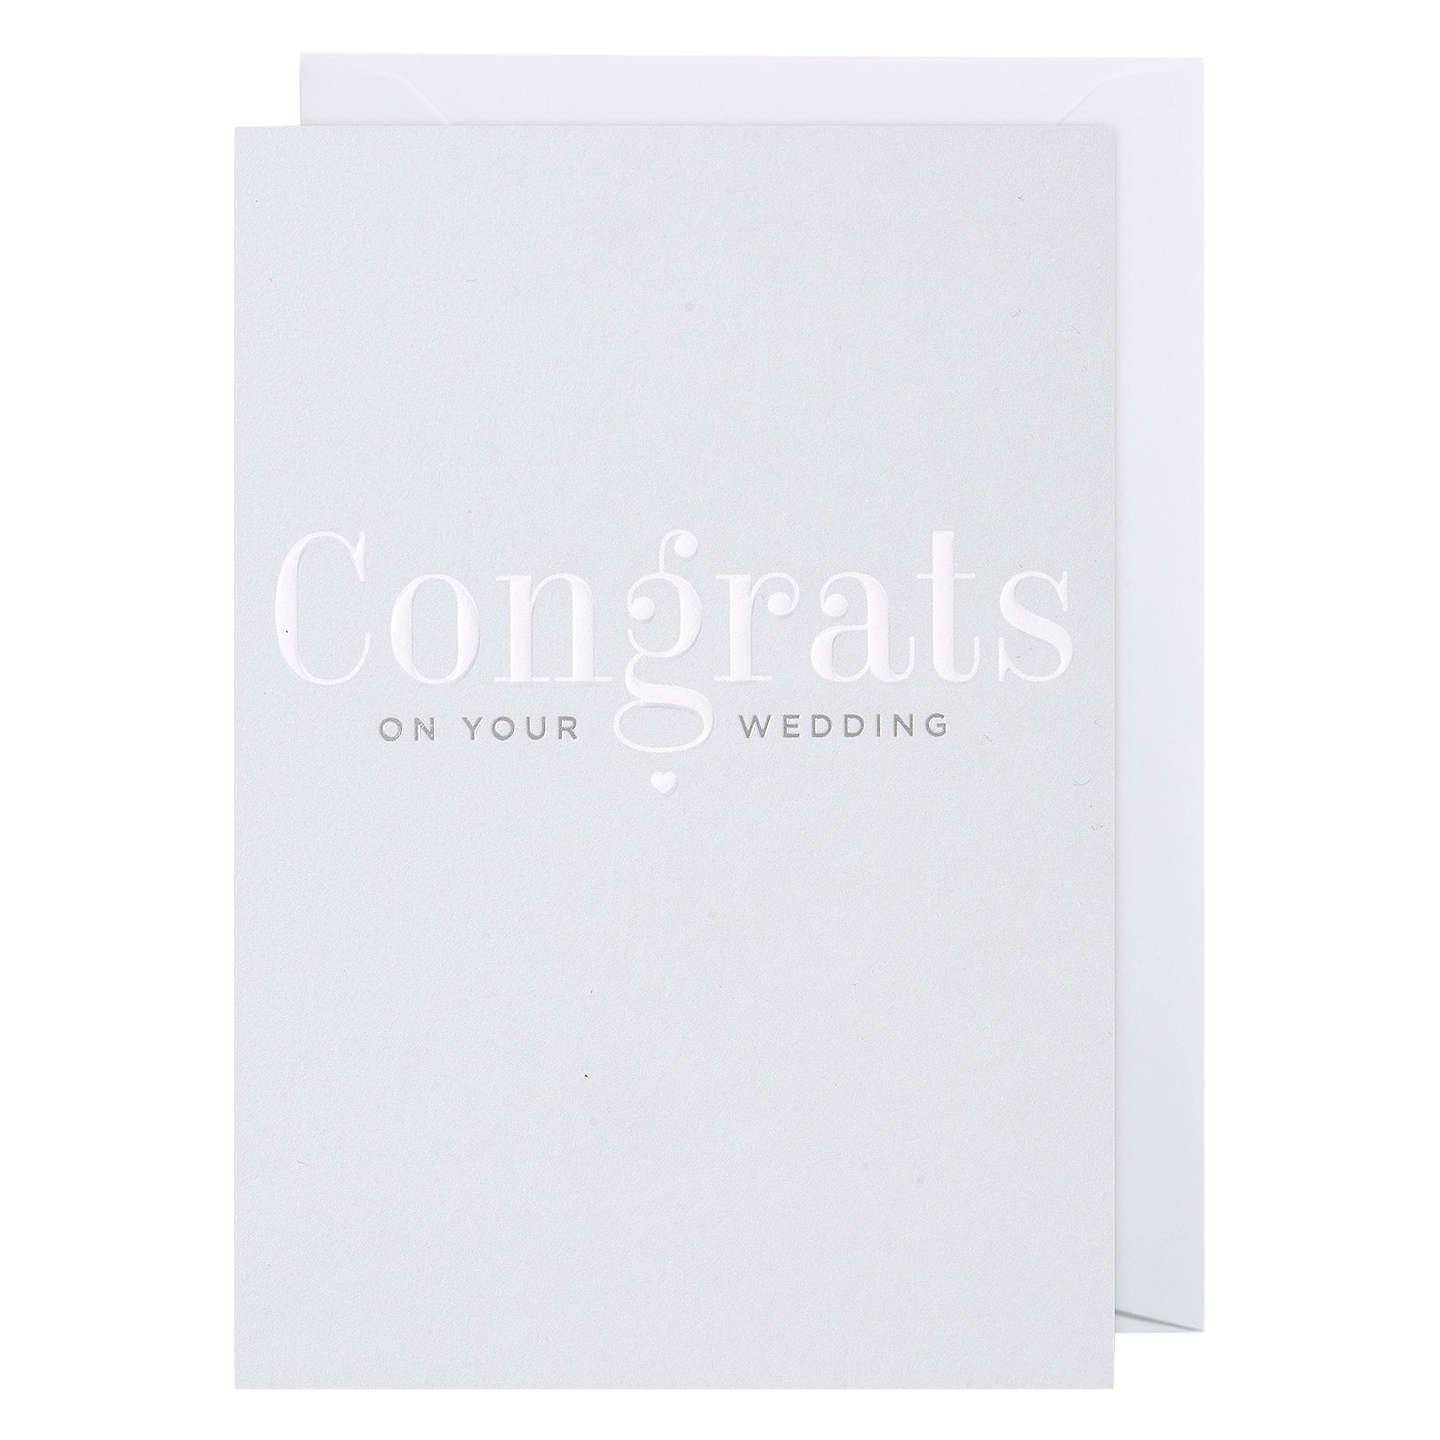 Lagom Designs Congrats On Your Wedding Card at John Lewis